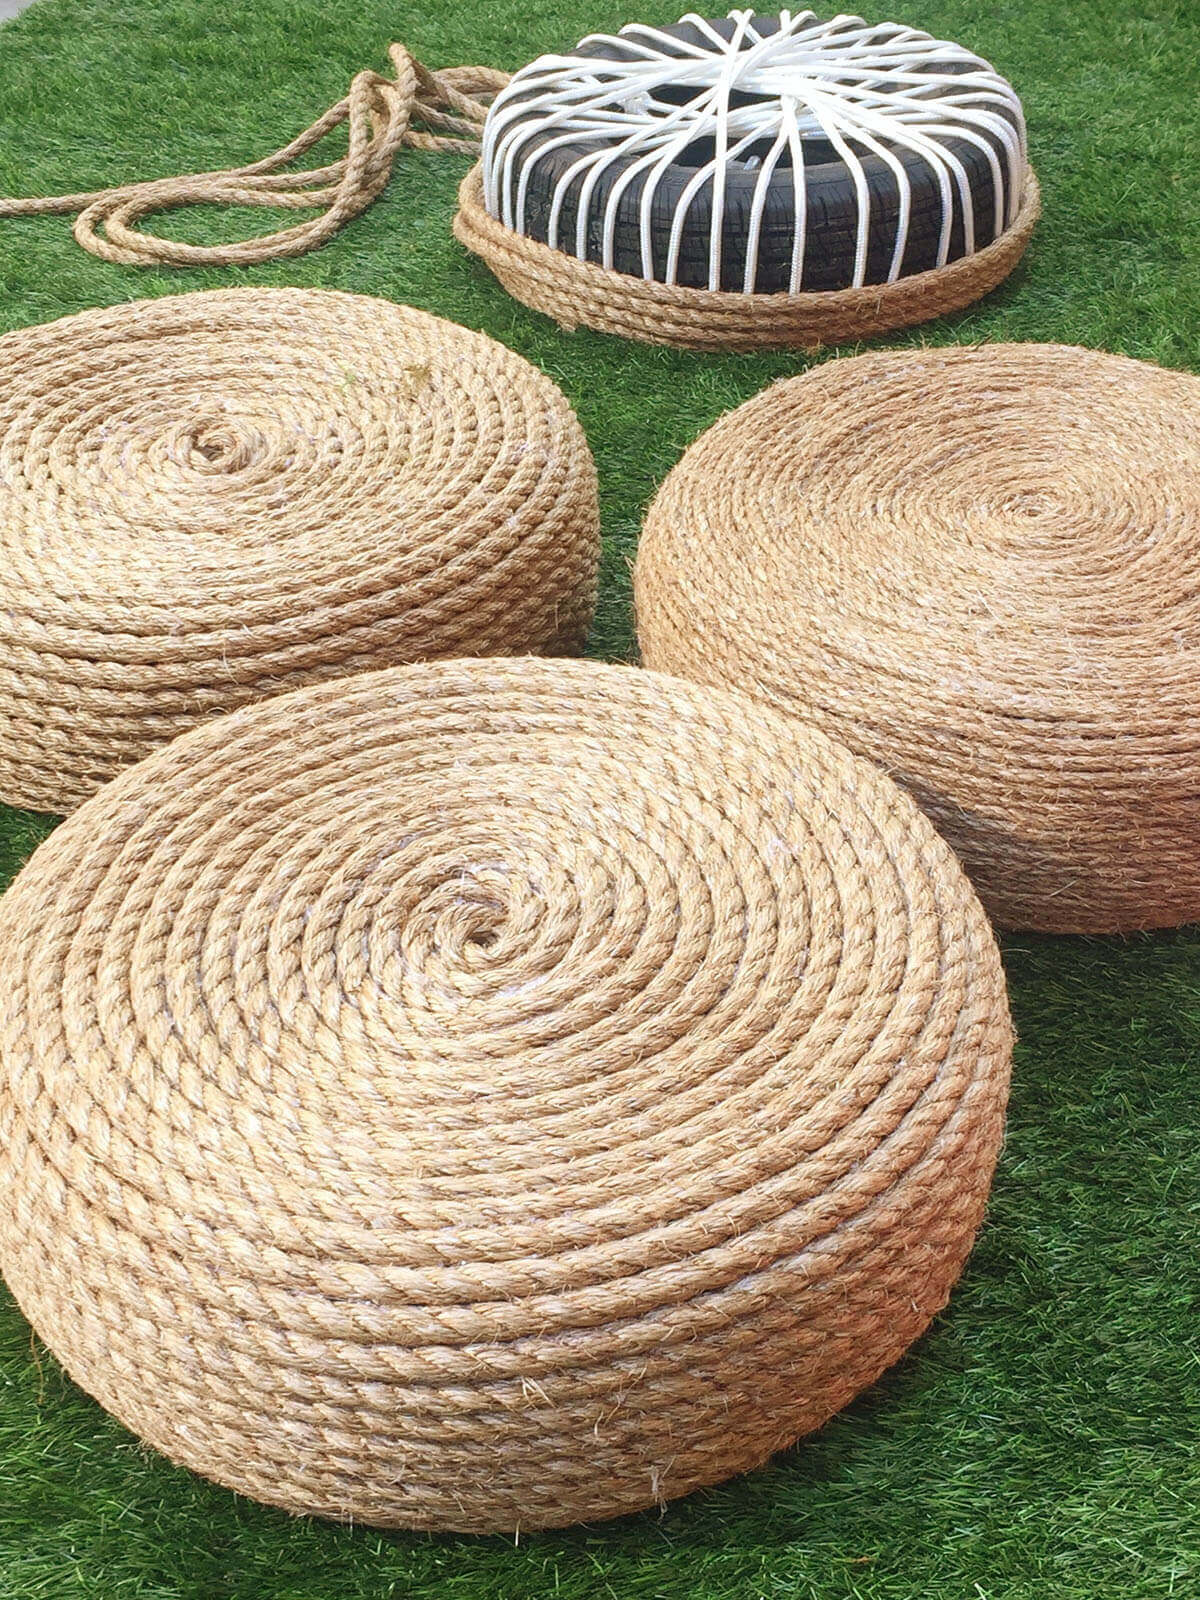 Enchanting 2018 Diy Backyard Project Ideas Backyard Summer Project Ideas Rope Covered Recycled Tire Seats Backyard Project Ideas Designs outdoor Backyard Project Ideas